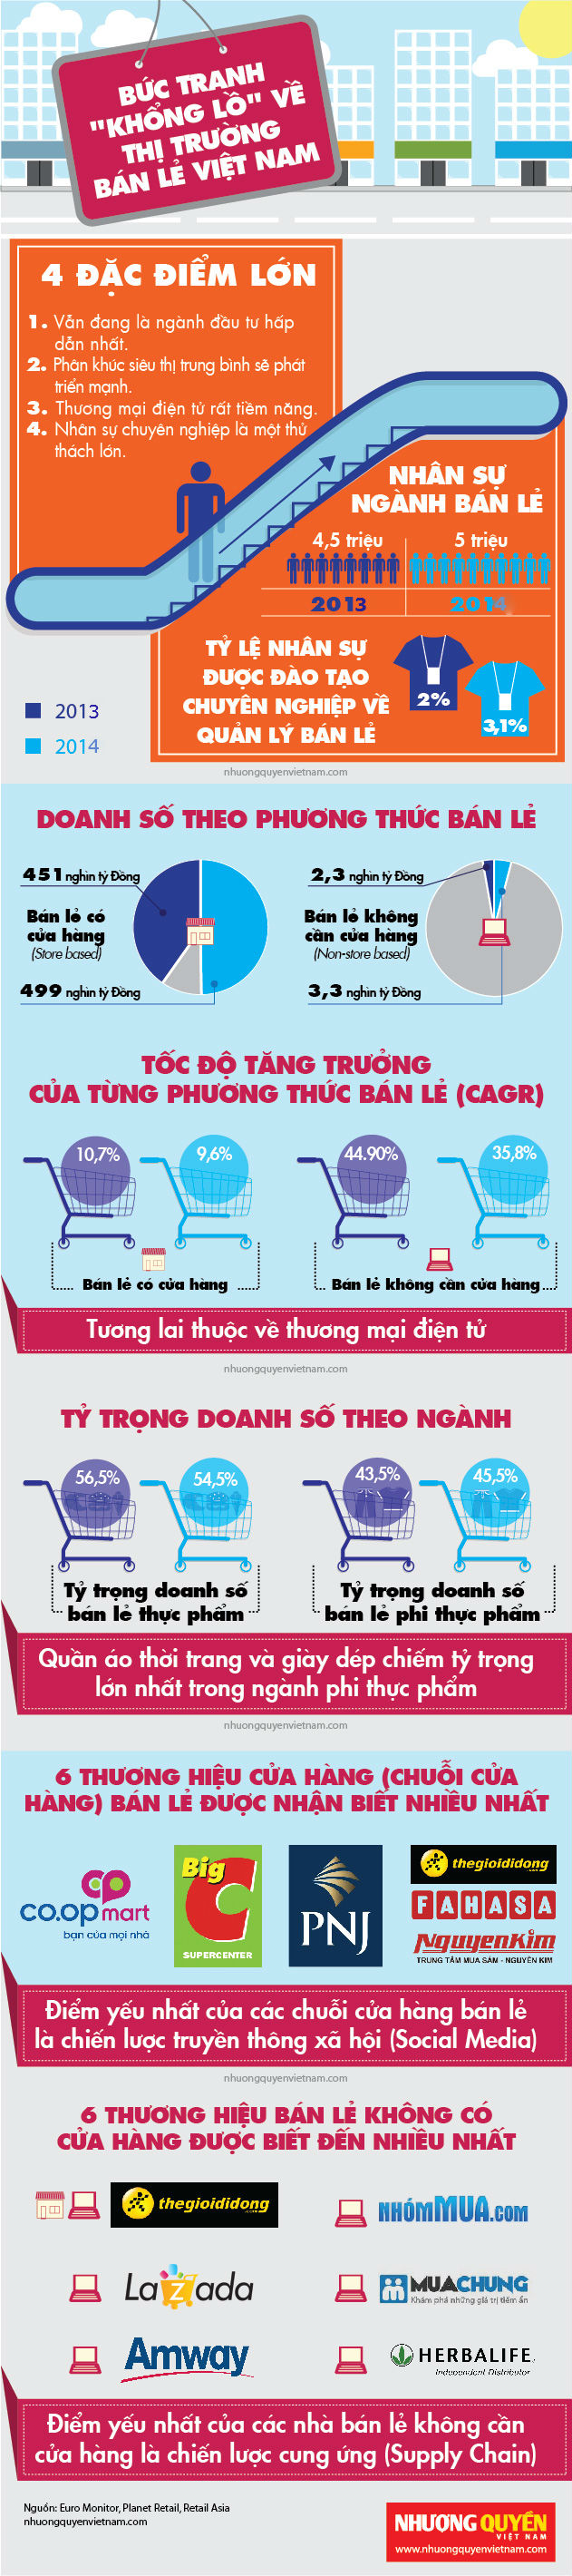 infographic-buc-tranh-khong-lo-ve-thi-truong-ban-le-viet-nam